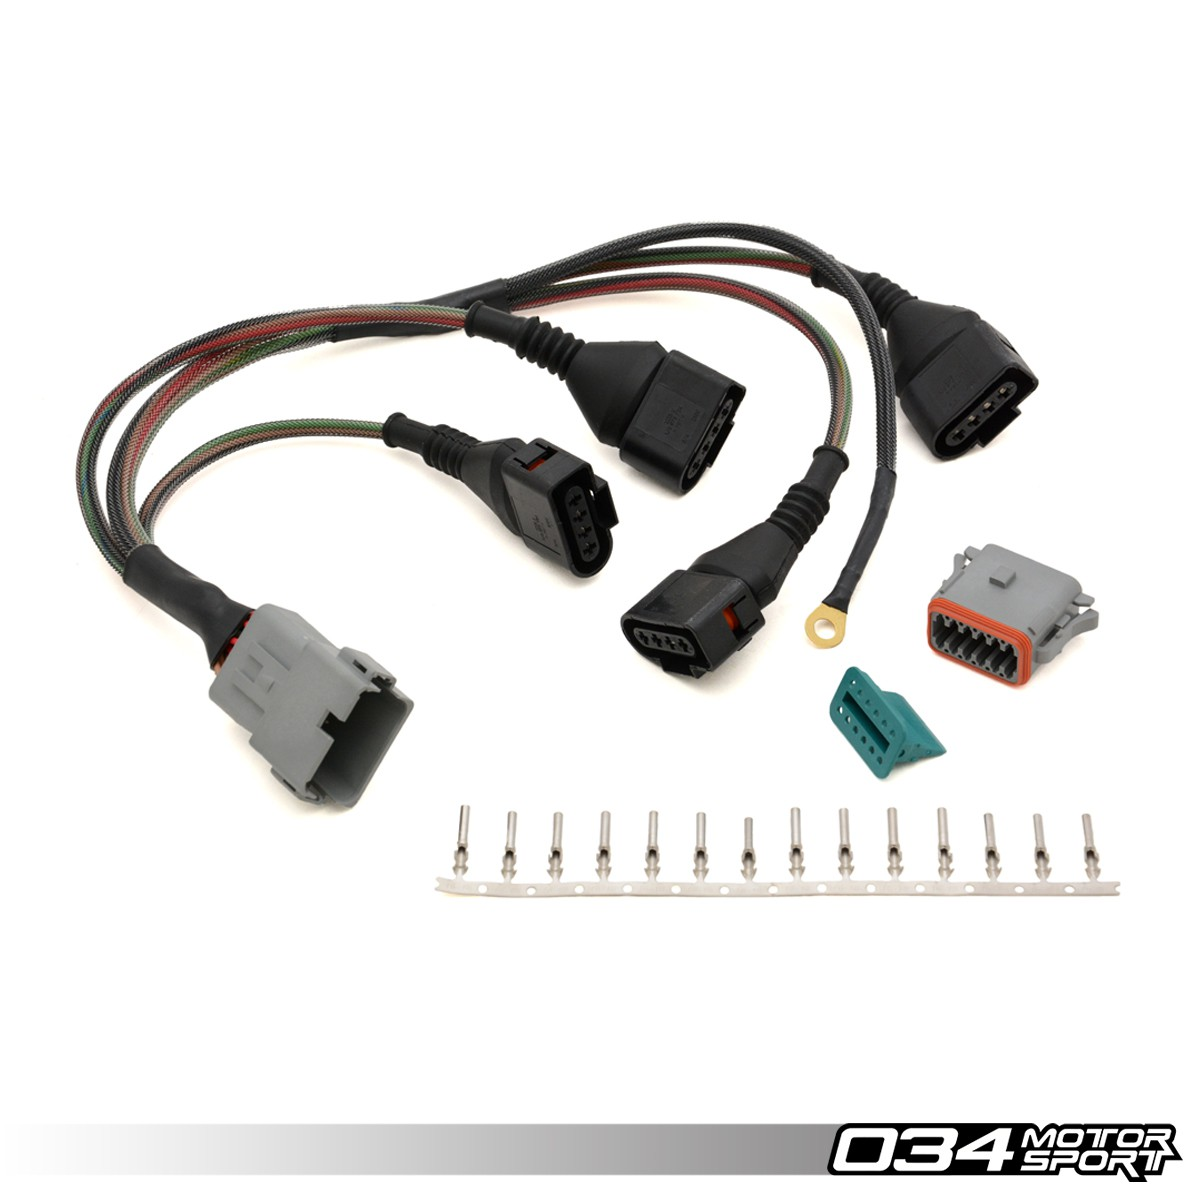 repair update harness audi volkswagen 18t with 4 wire coils 034motorsport 034 701 0004 2 repair update harness, audi volkswagen 1 8t with 4 wire coils Dune Buggy Wiring Harness Kit at fashall.co